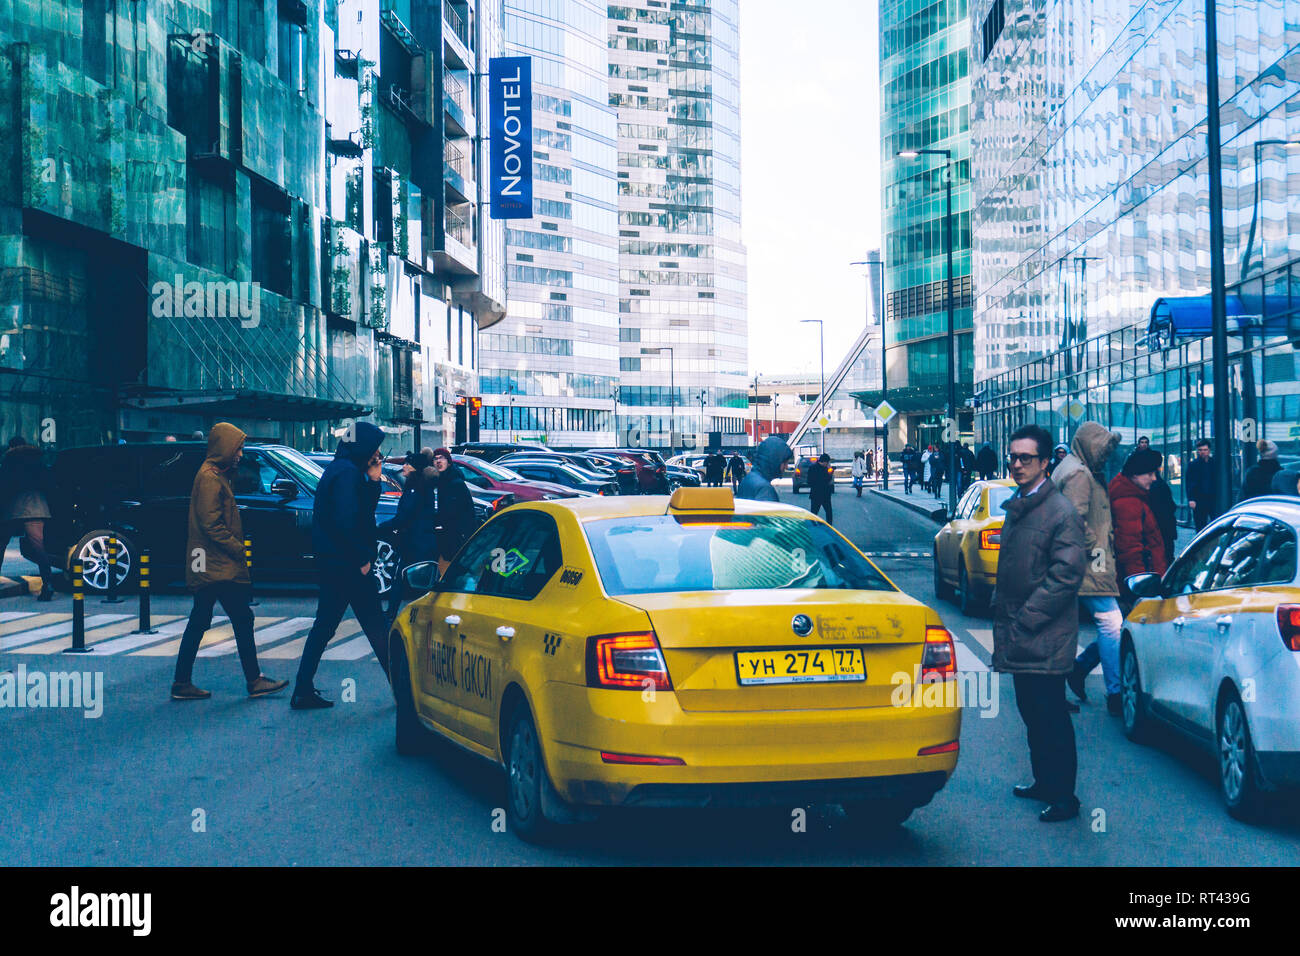 Moscow, Russia — February 18, 2019: Yandex Taxi car near Moscow